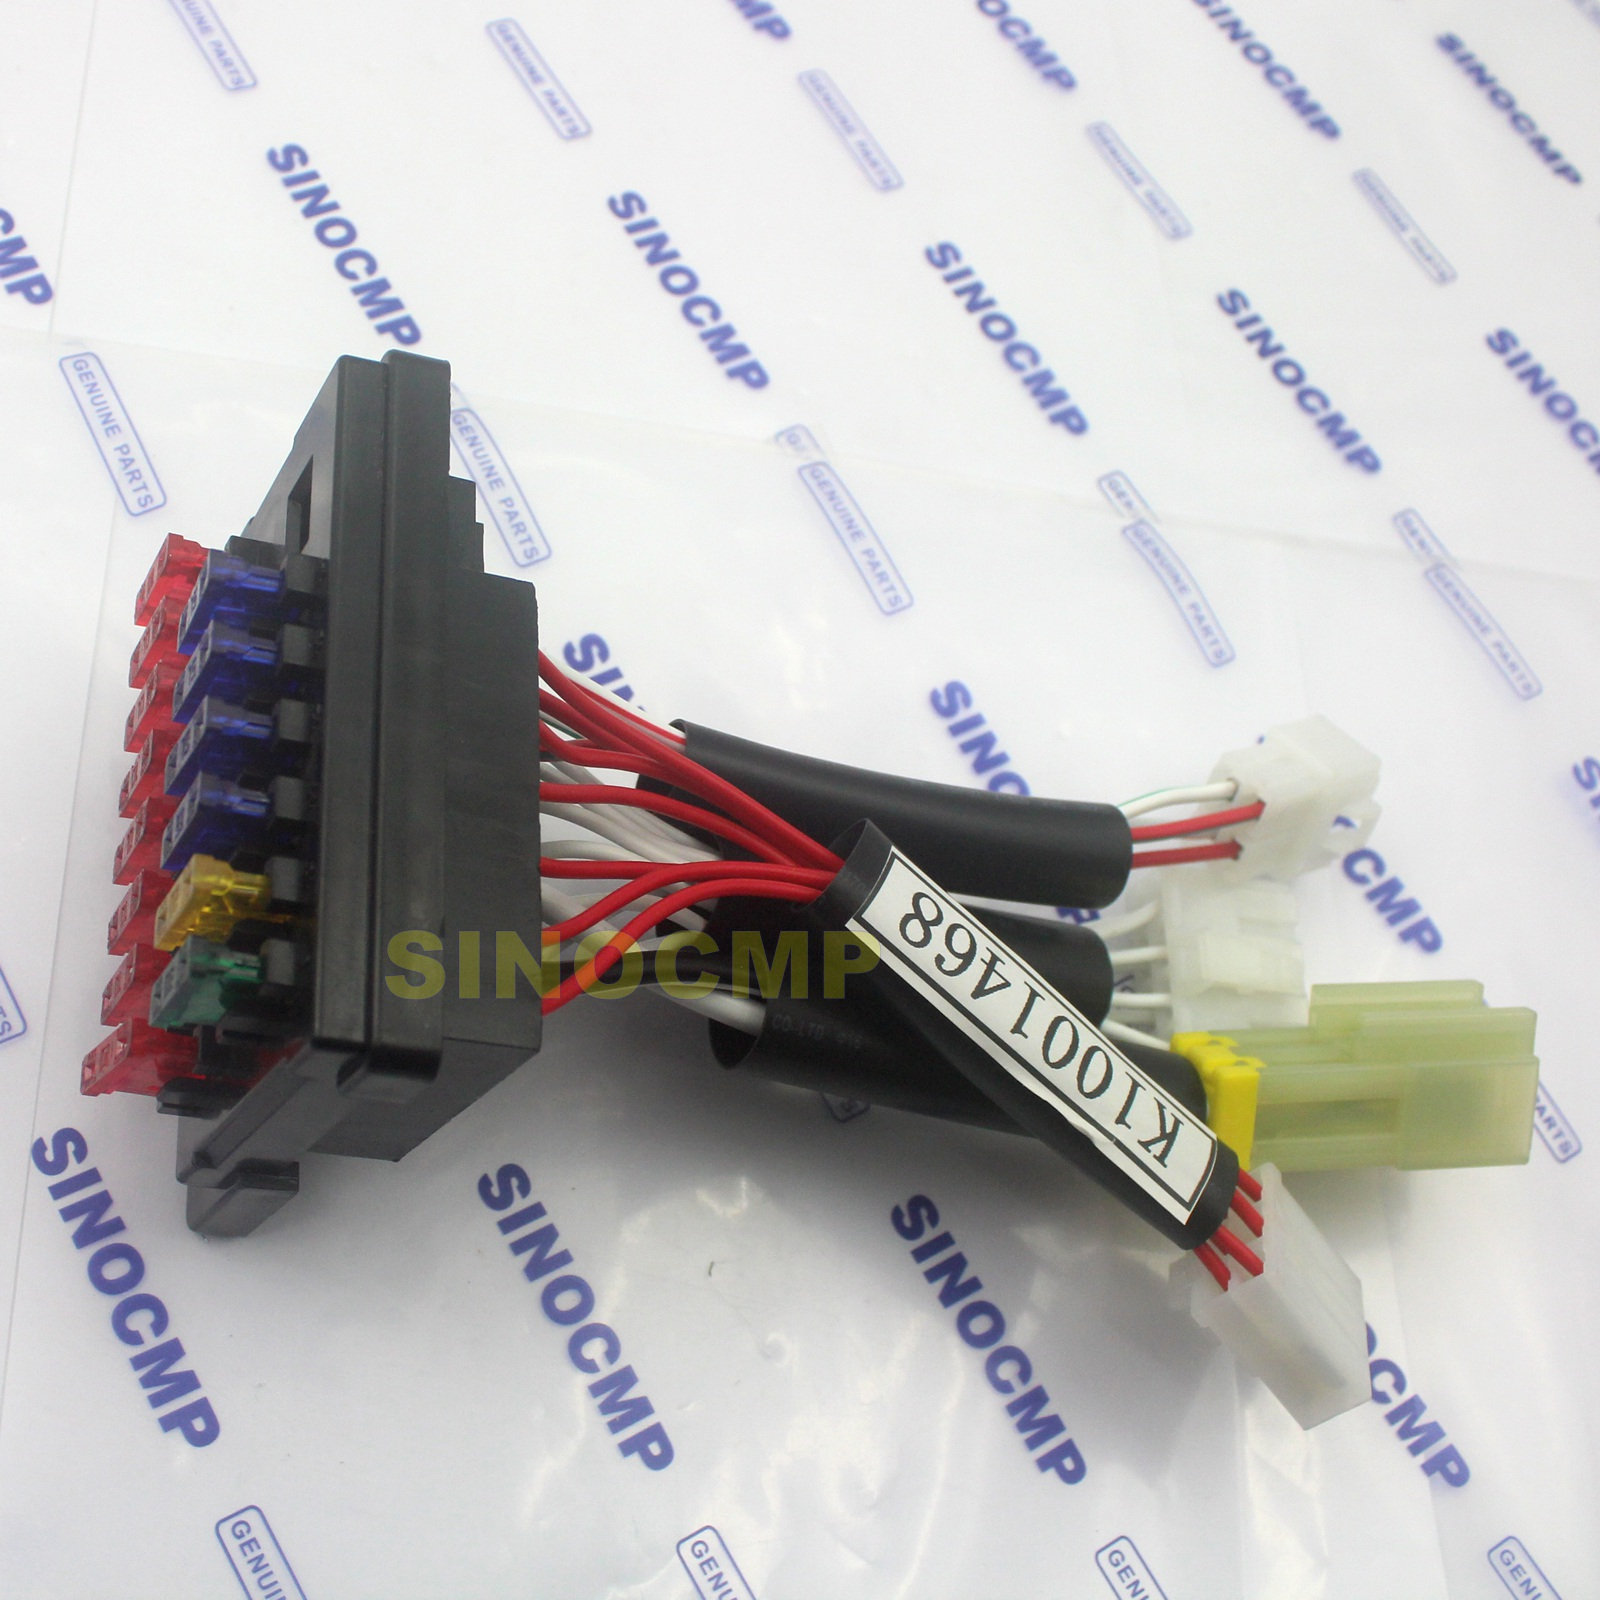 Daewoo Fuse Box Wiring Library Cmp Ballast Diagram Assembly K1001468 For Doosan Dh60 7 Excavator